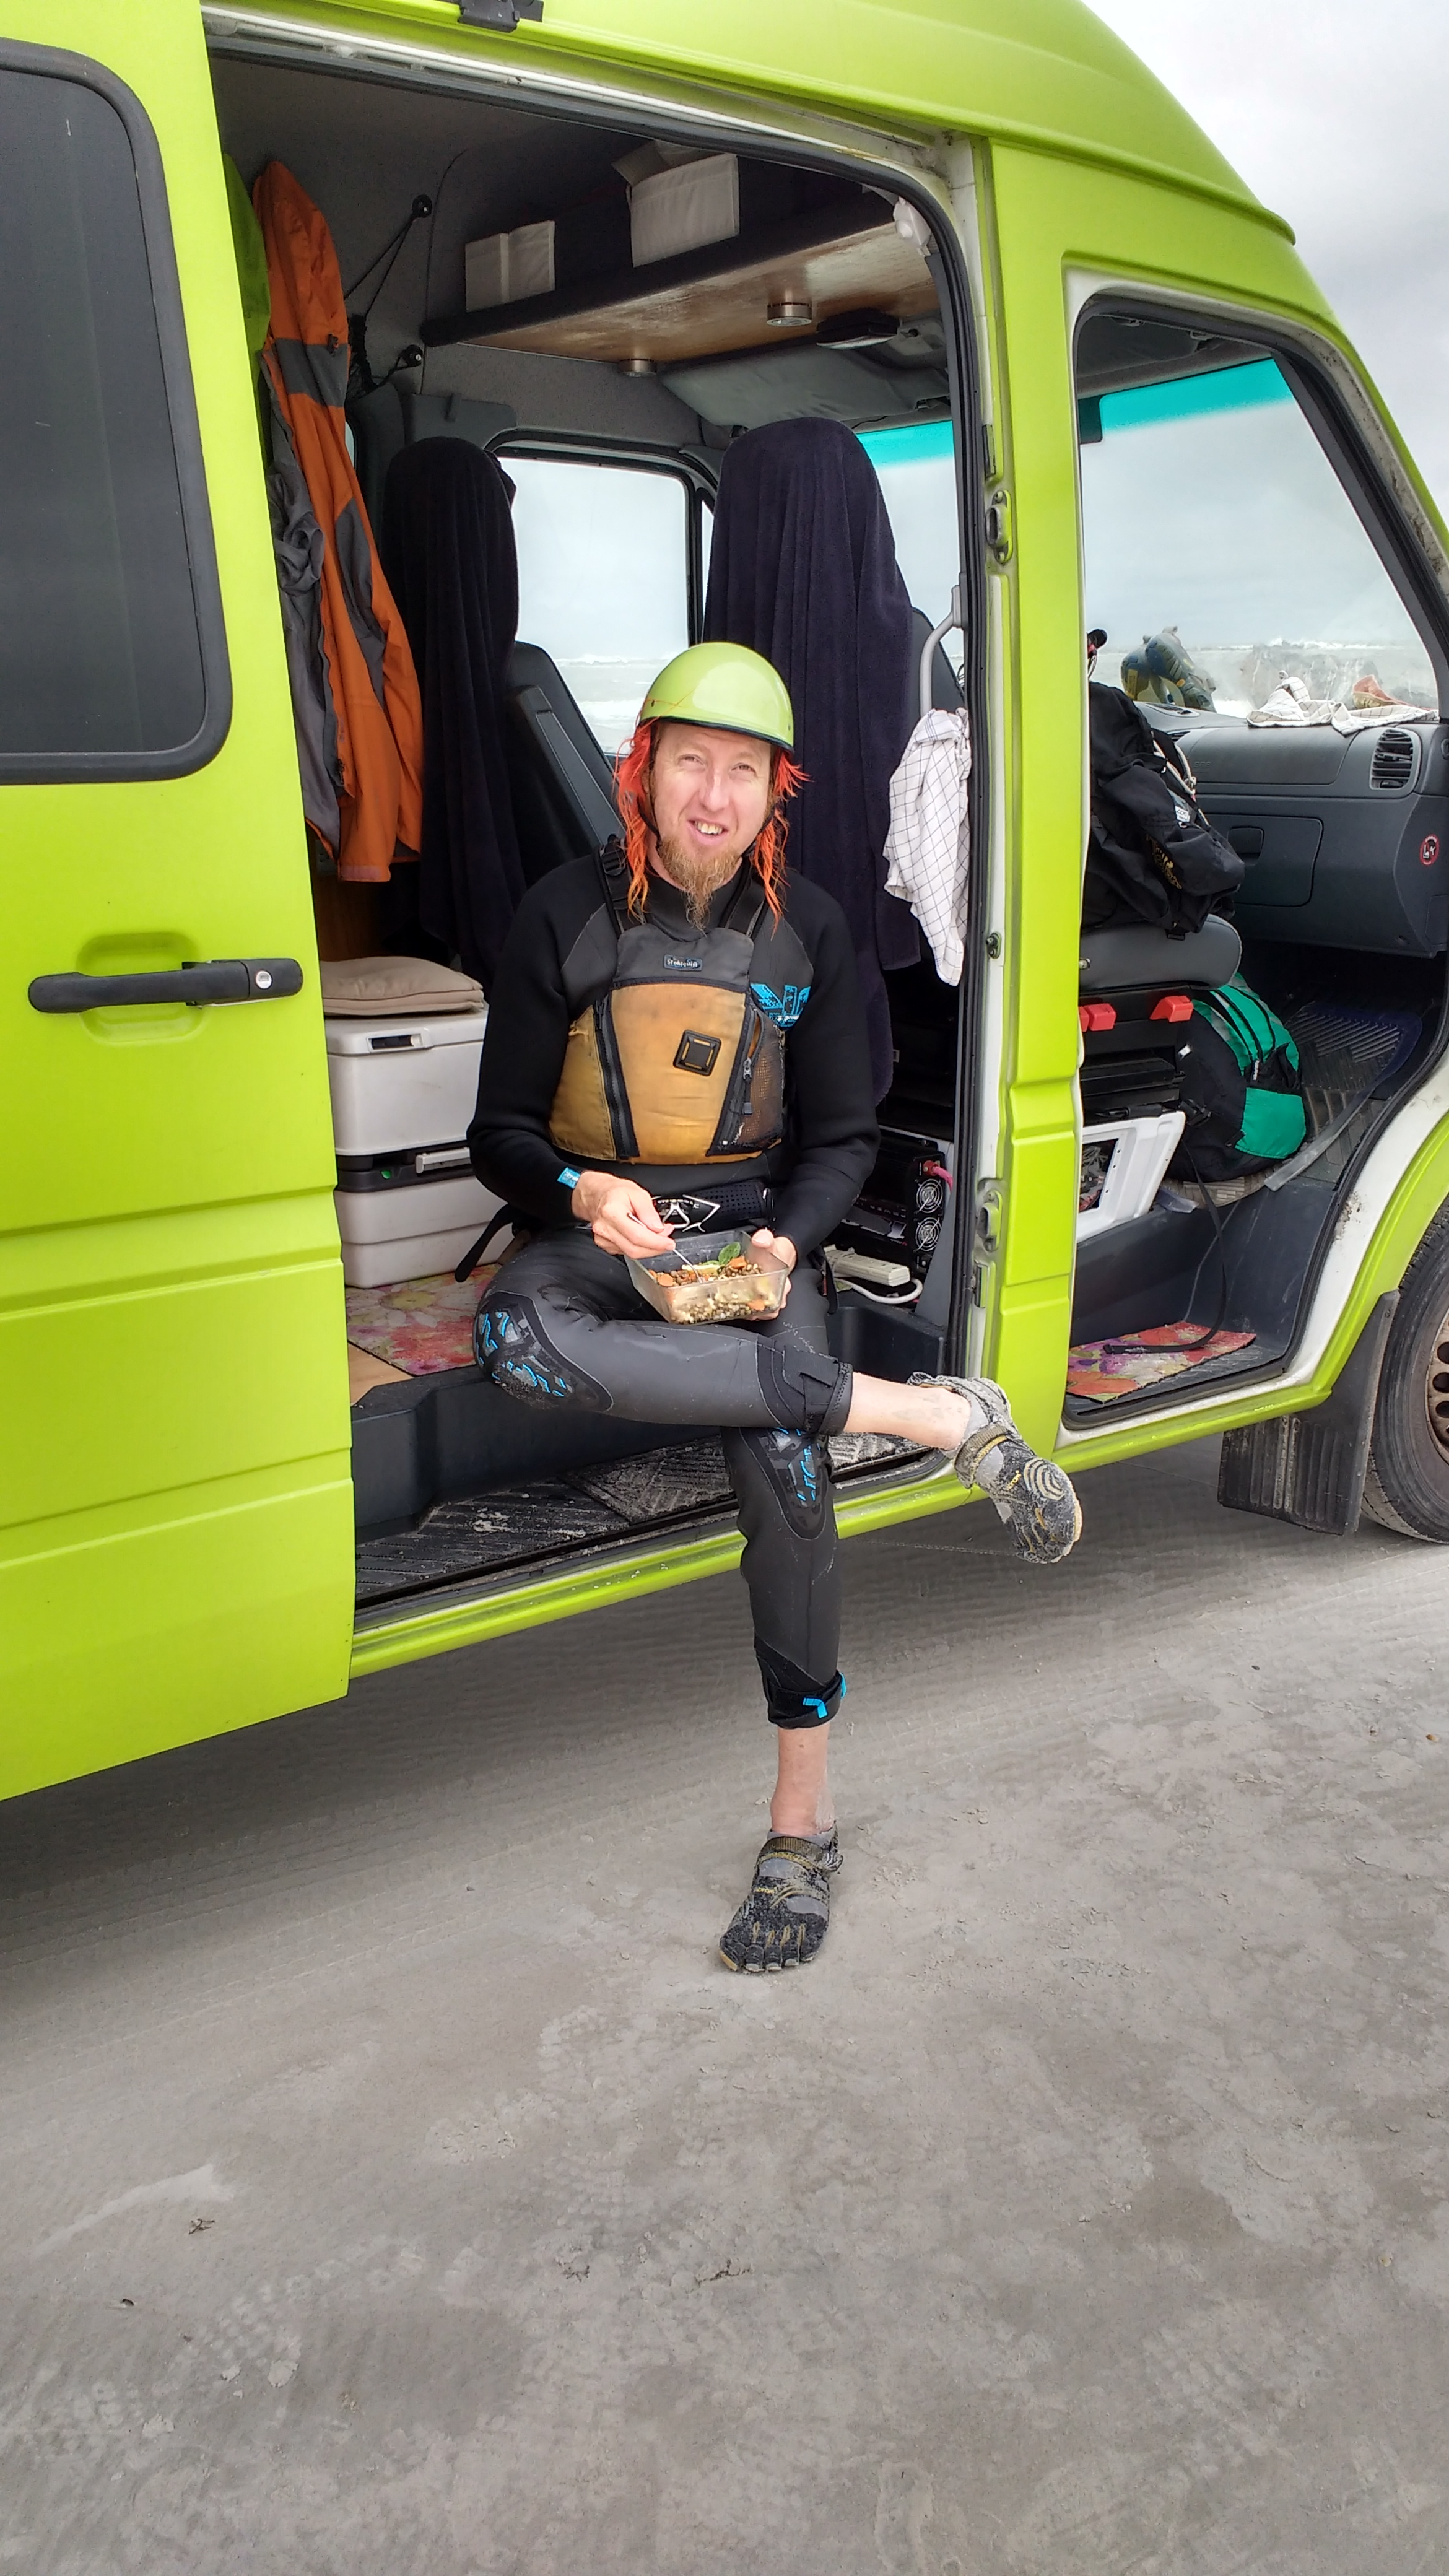 We were able to drive the sprinter for miles on the beach which made the kiting really nice.